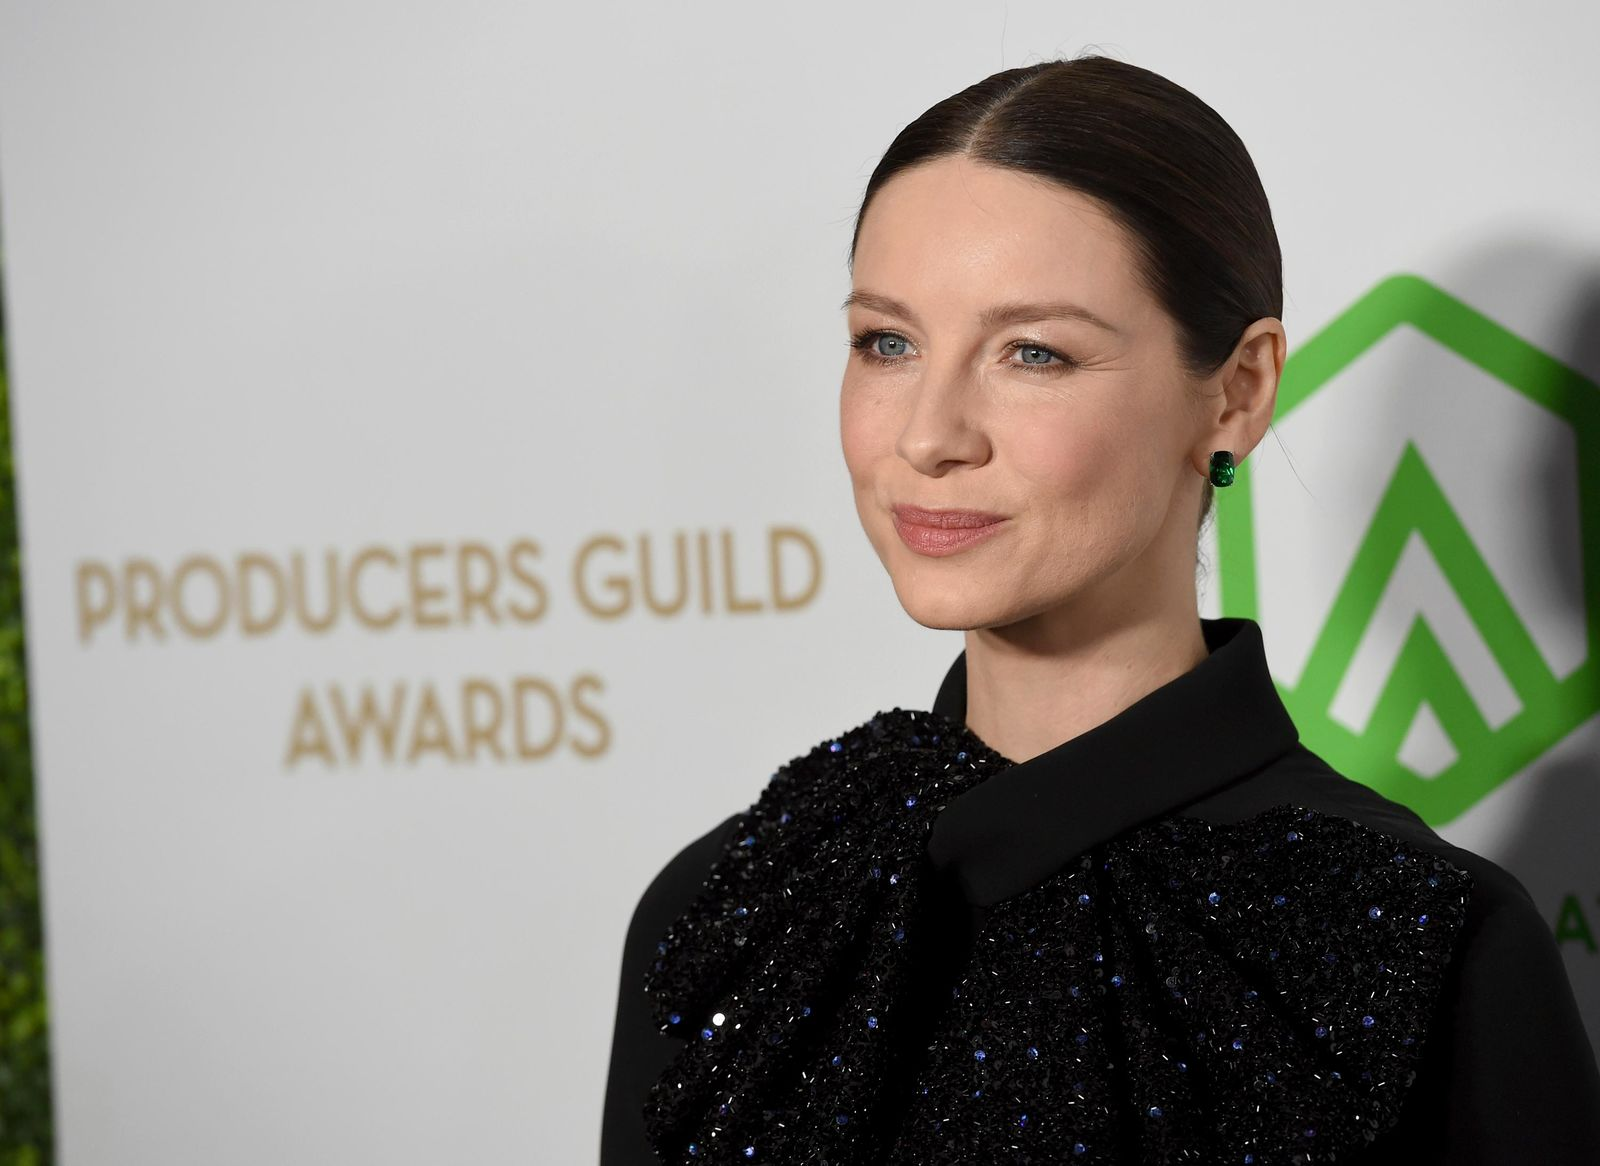 Caitriona Balfe arrives at the 2020 Producers Guild Awards at the Hollywood Palladium on Saturday, Jan. 18, 2020, in Los Angeles, Calif. (AP Photo/Chris Pizzello)